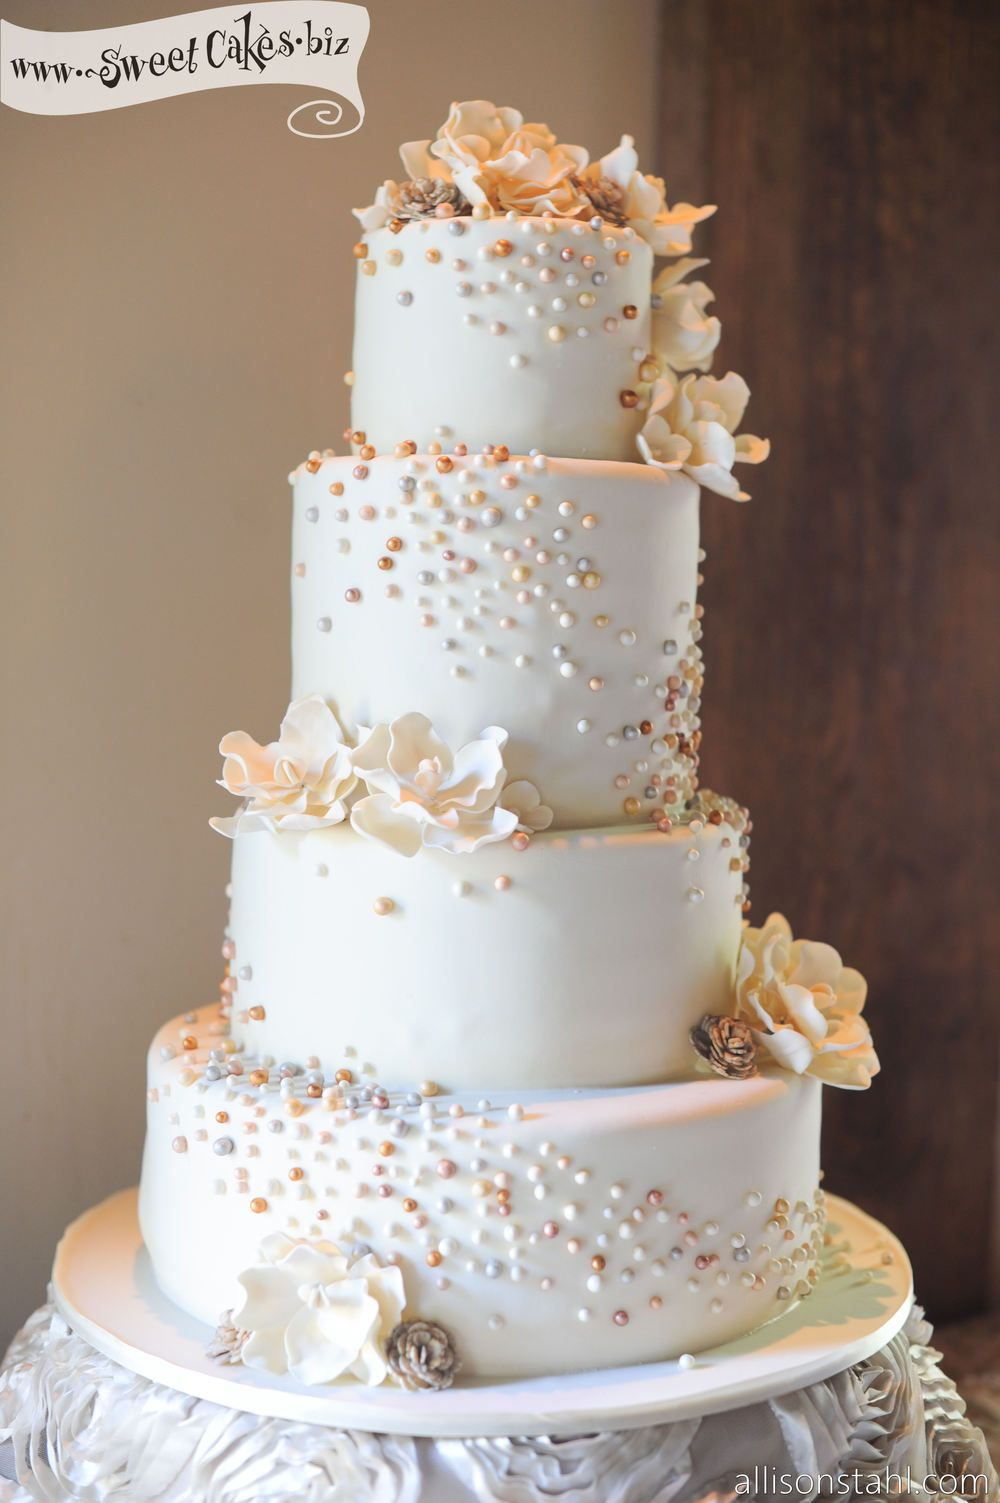 Top 10 Wedding Cakes with Pearls: Elegant Inspiration | Pinterest ...